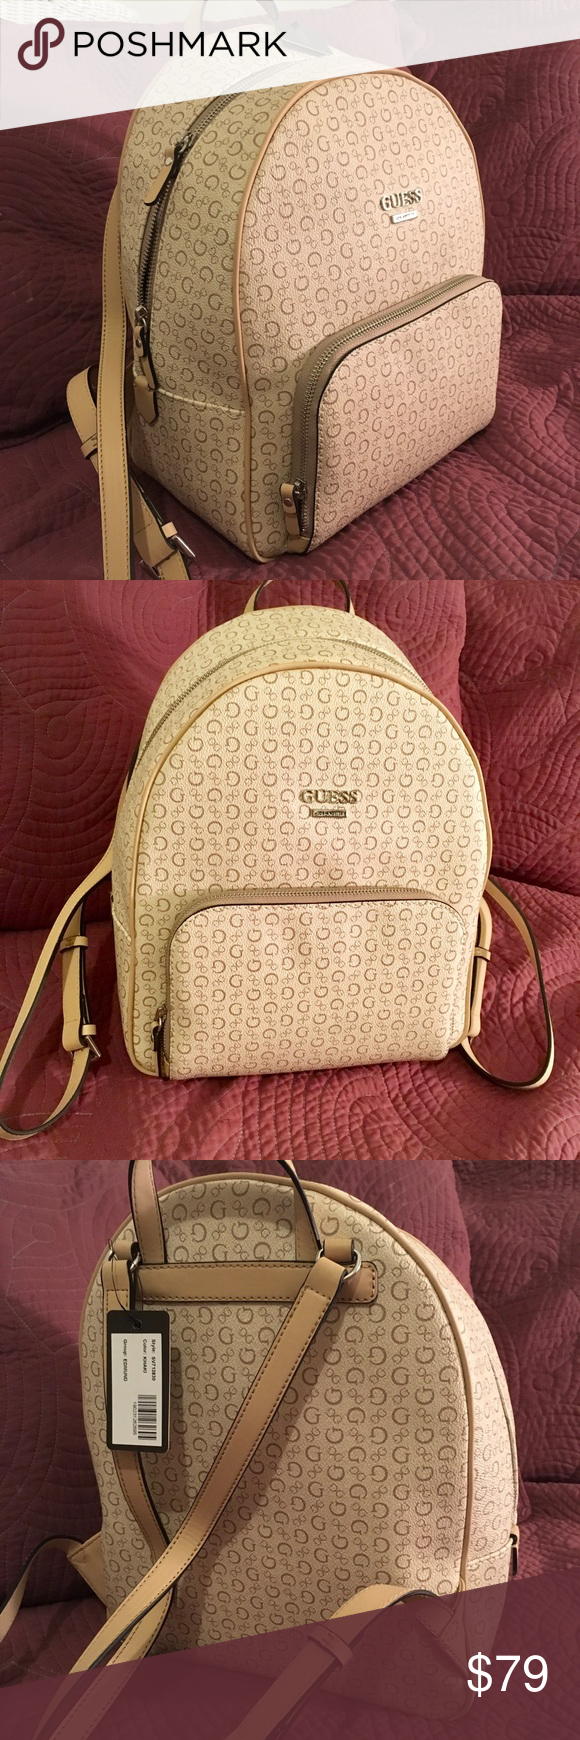 huge sale nice cheap special discount GUESS BACK PACK EDMUND, KHAKI, SV713830 🤩💕 🎒 CUTE AND ...